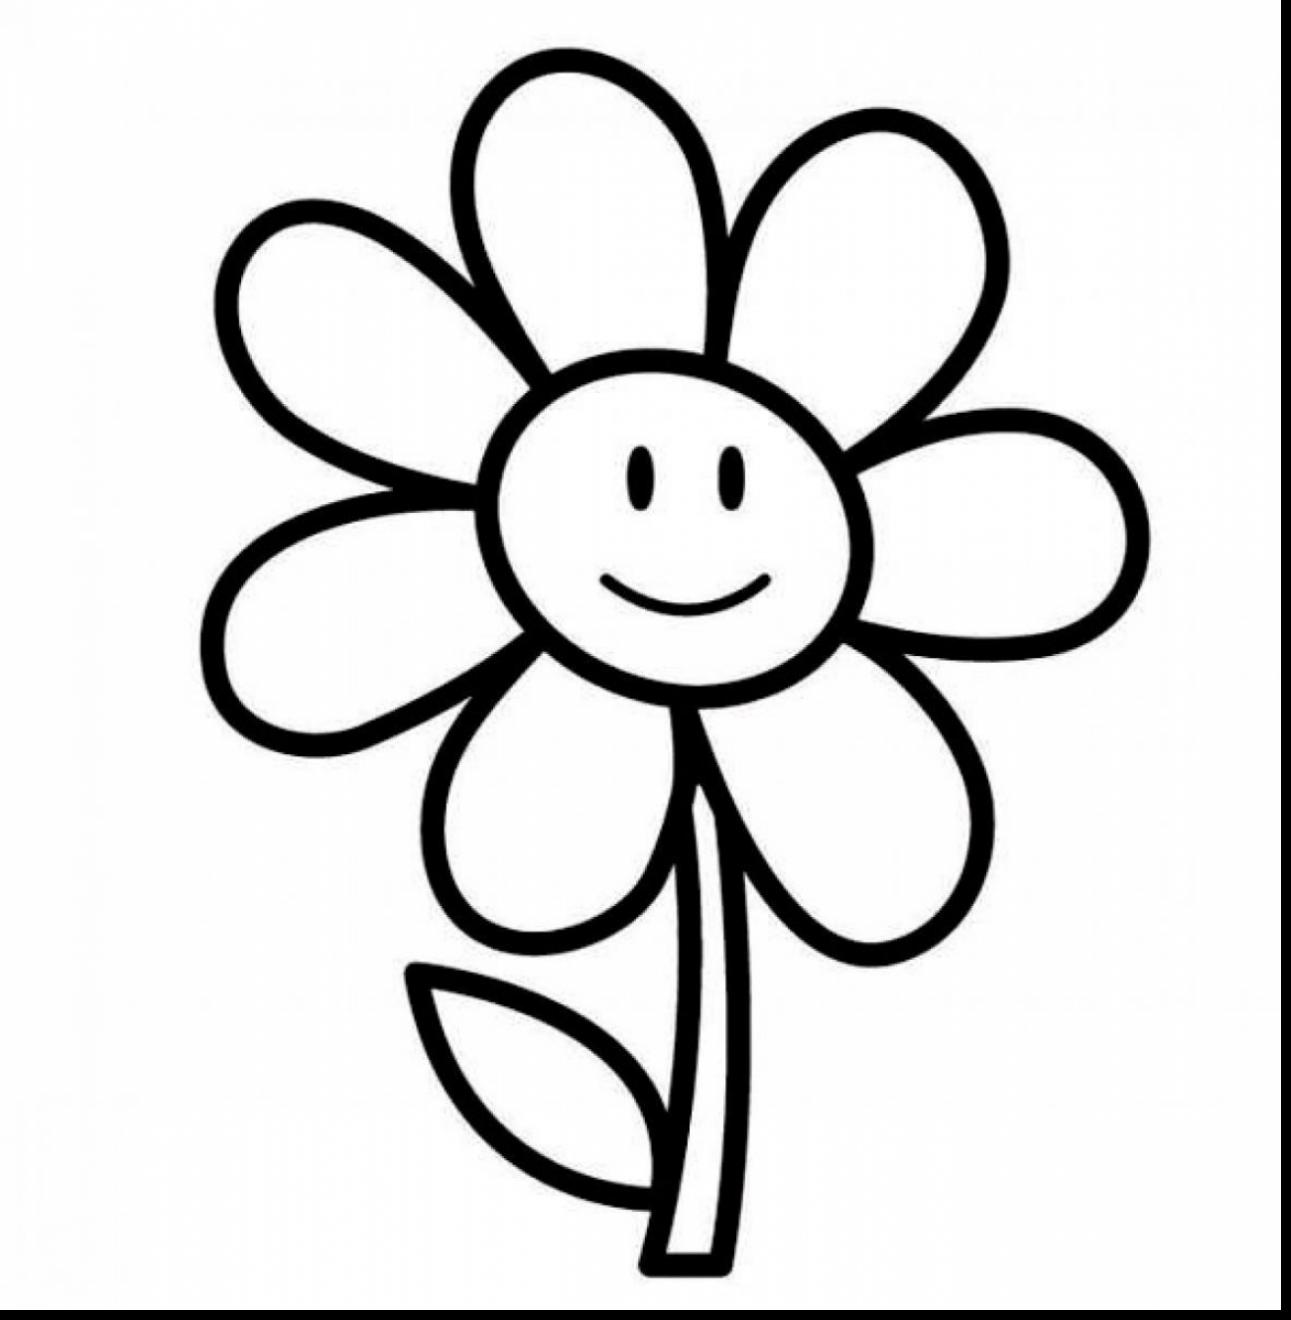 Free Easy Drawing For Kids